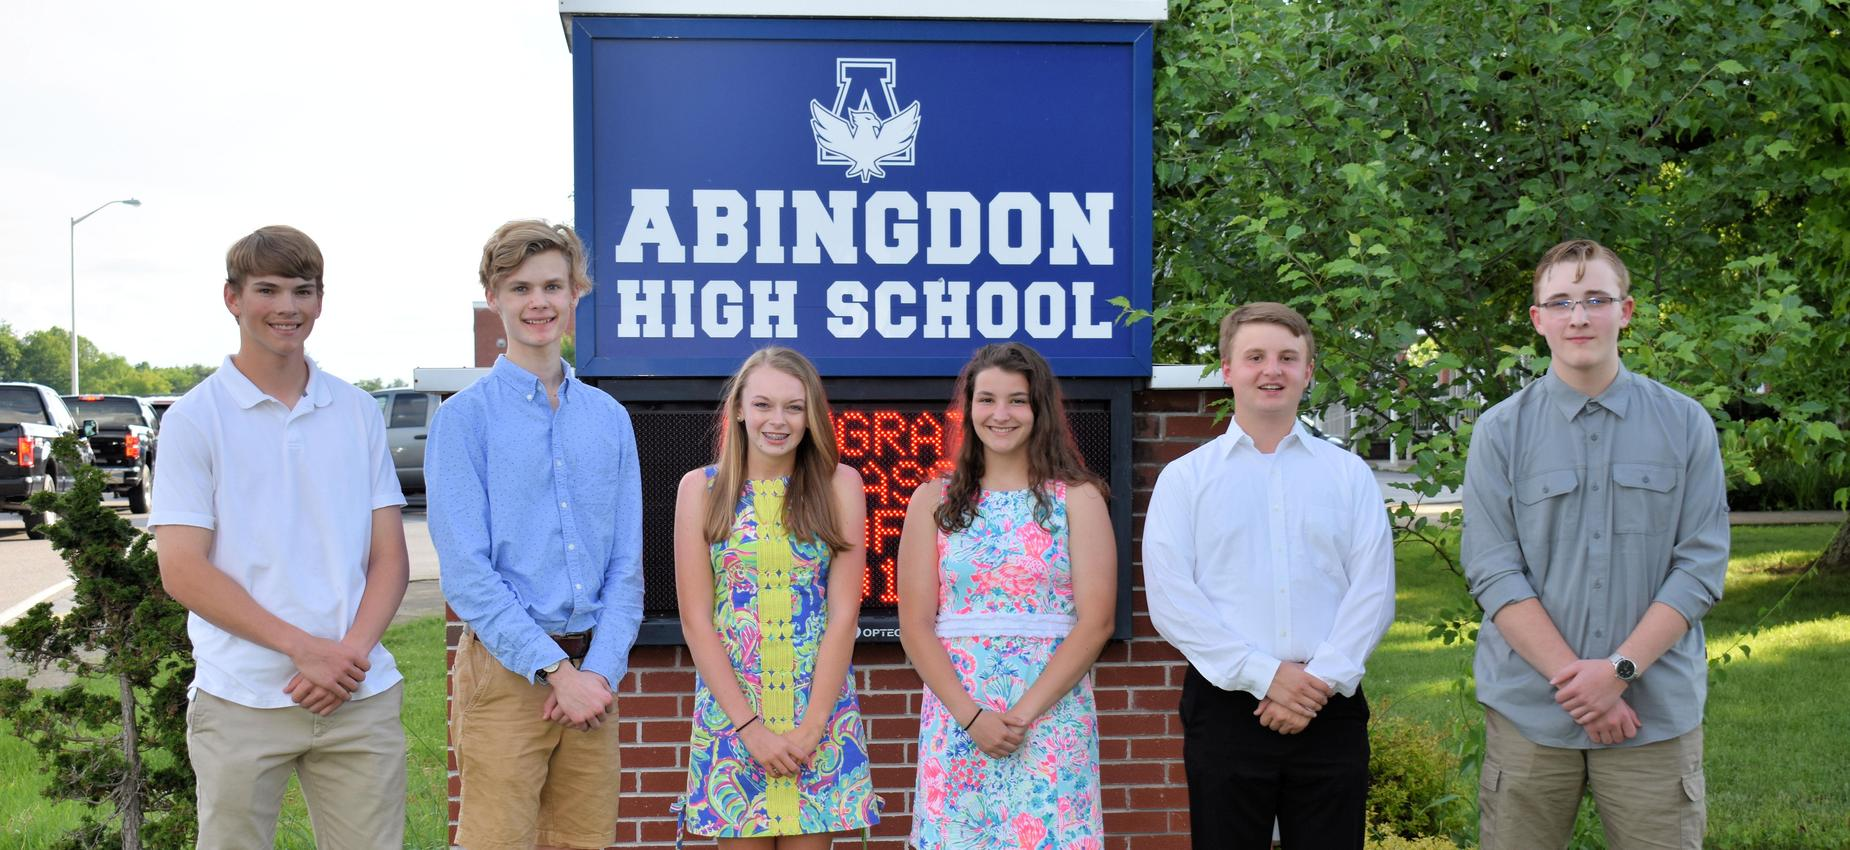 Abingdon High School